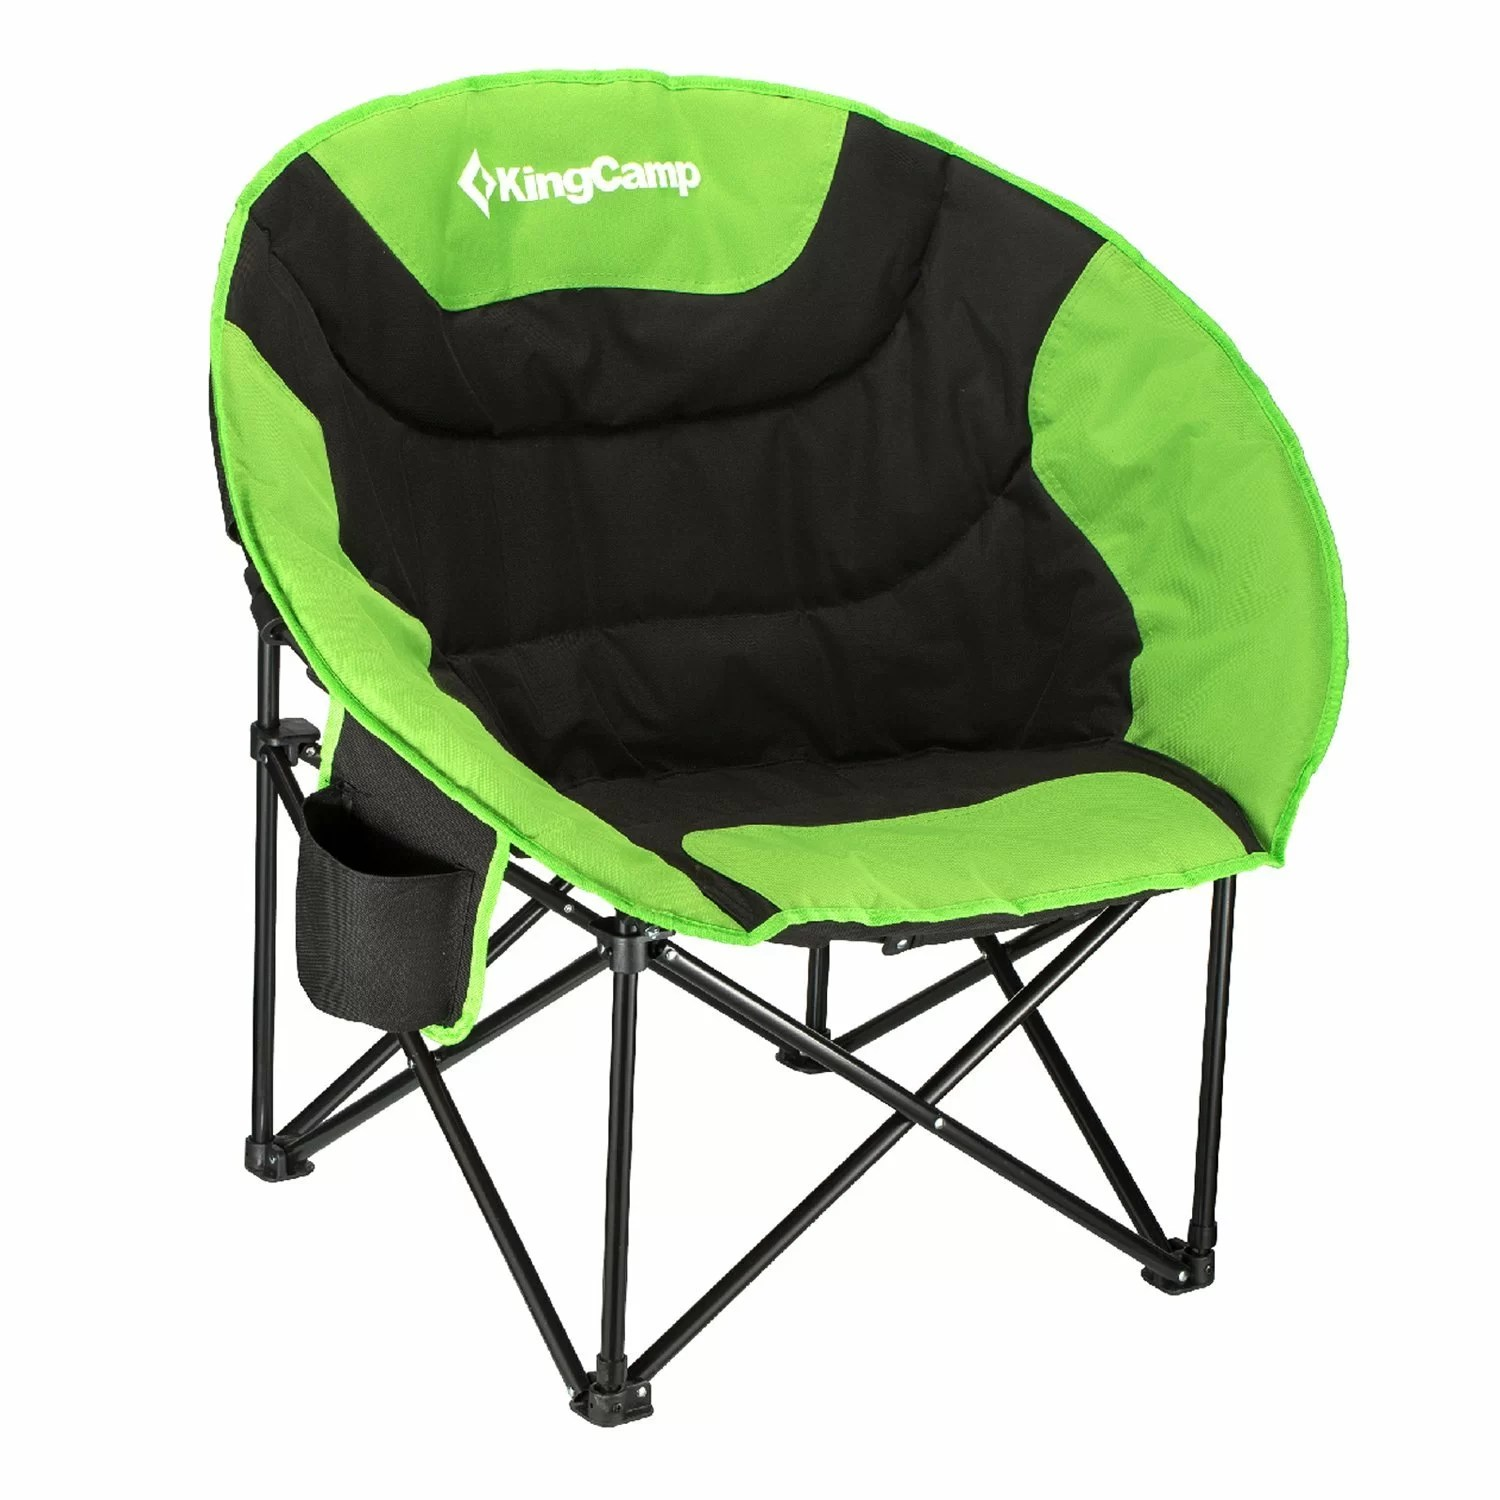 baby camp chair plastic rail kingcamp moon saucer folding camping with carry bag wayfair